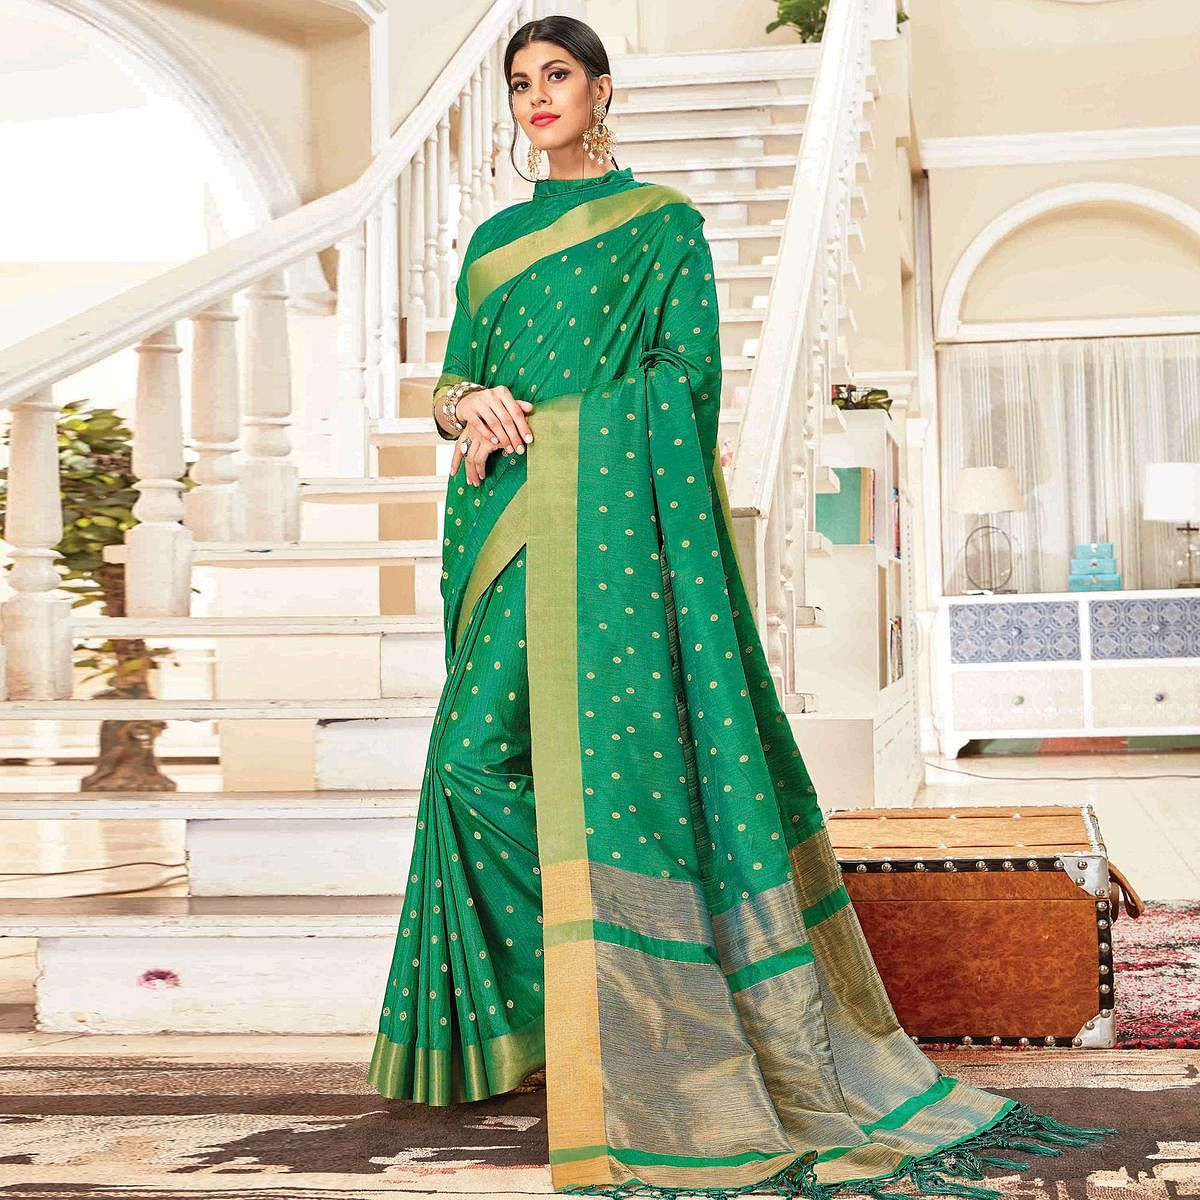 Blooming Green Colored Festive Wear Woven Handloom Silk Saree With Tassels